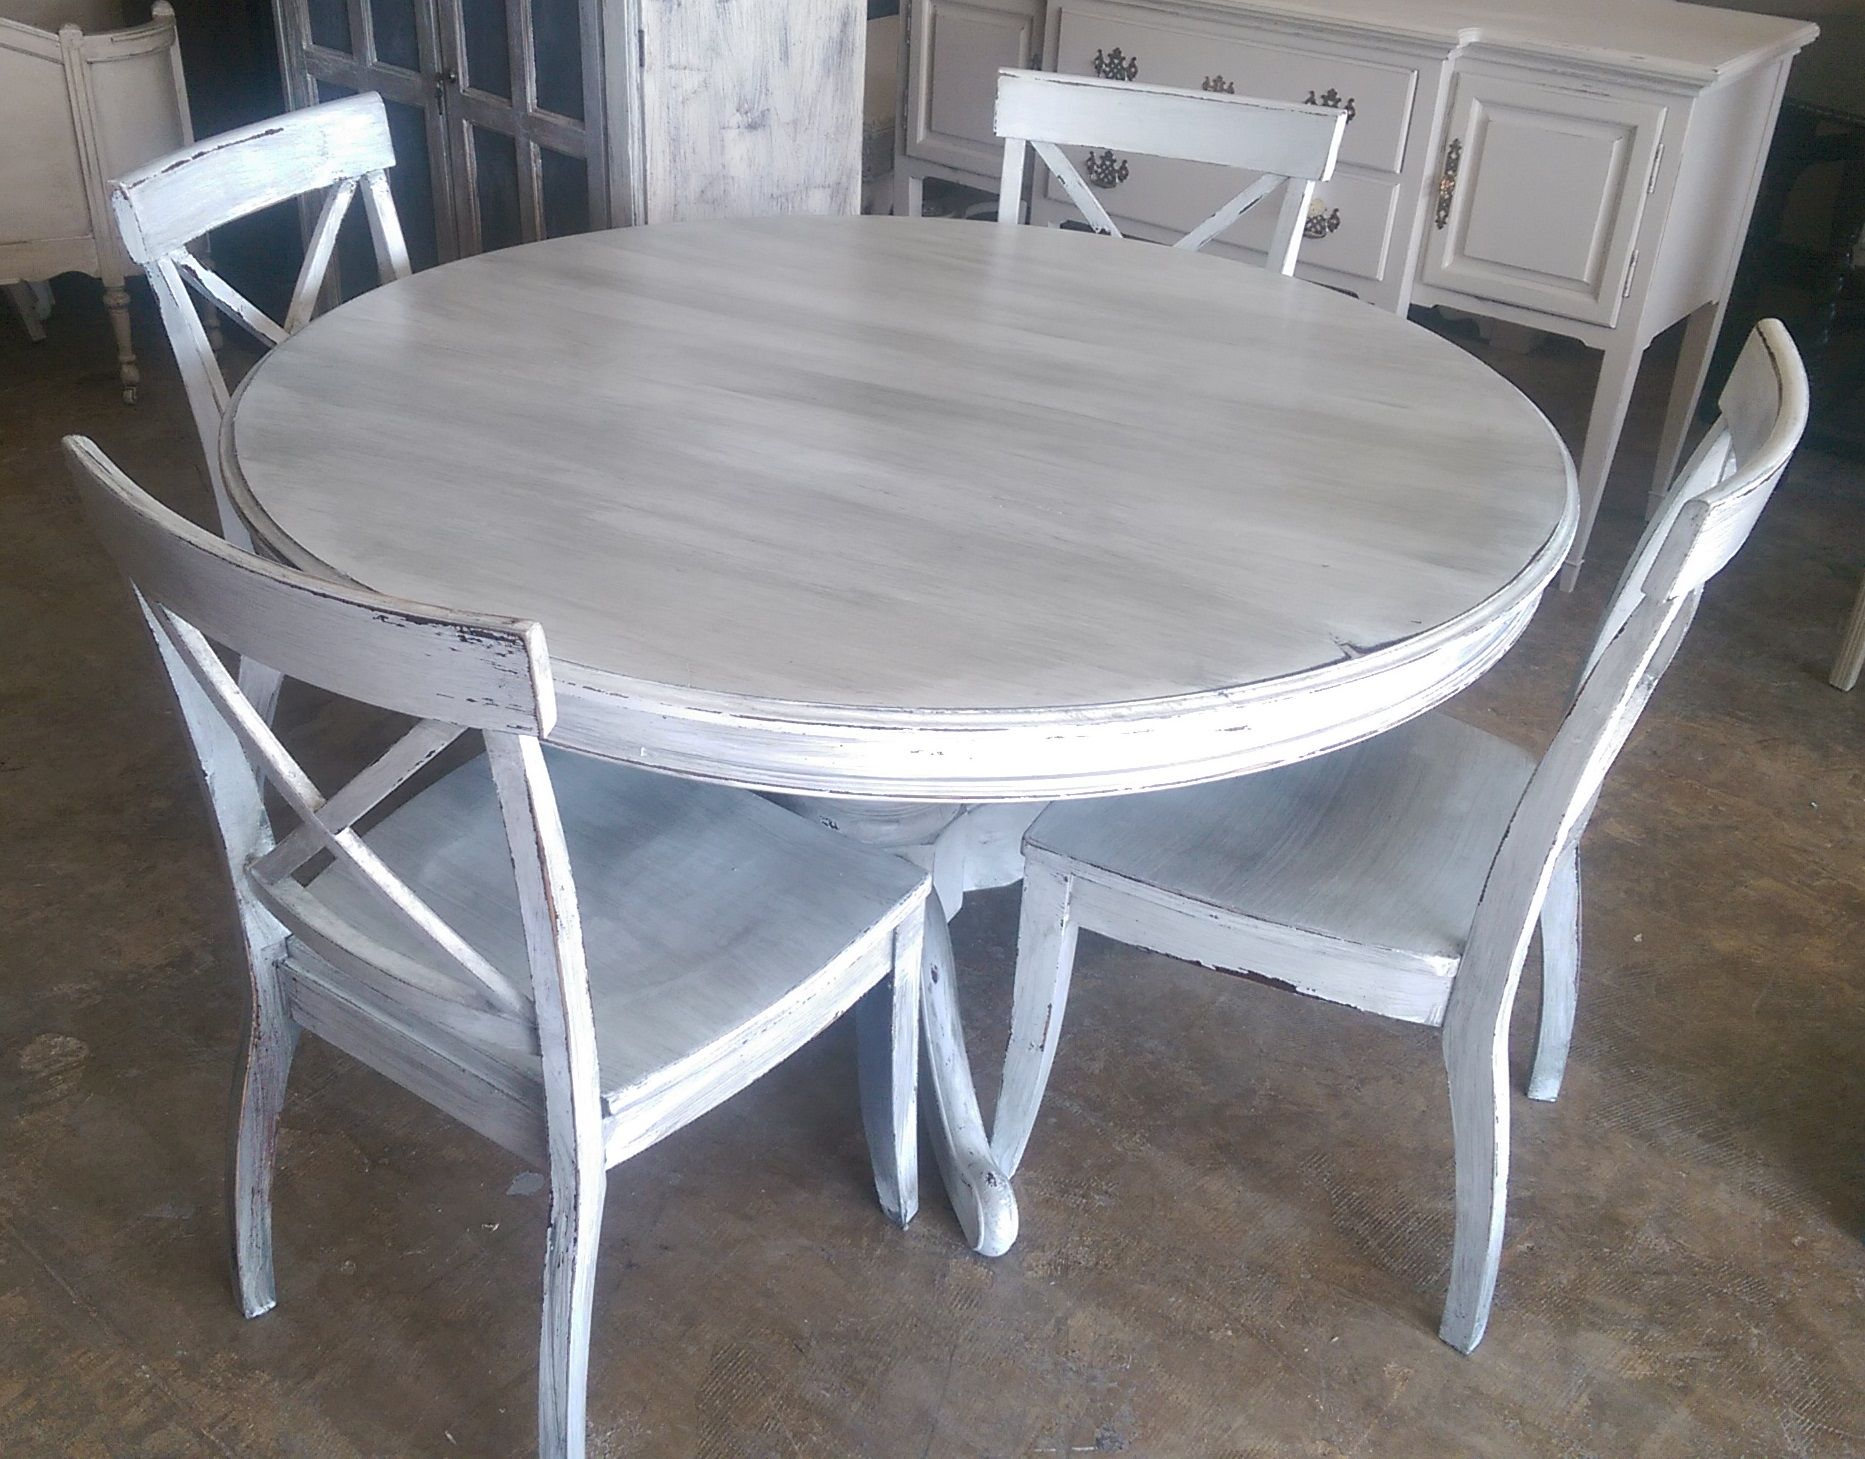 Here Is A 54 Round Table And Four Chairs I Painted It White With A Grey Wash Per Shabby Chic Kitchen Table Shabby Chic Dining Room Shabby Chic Dining Tables